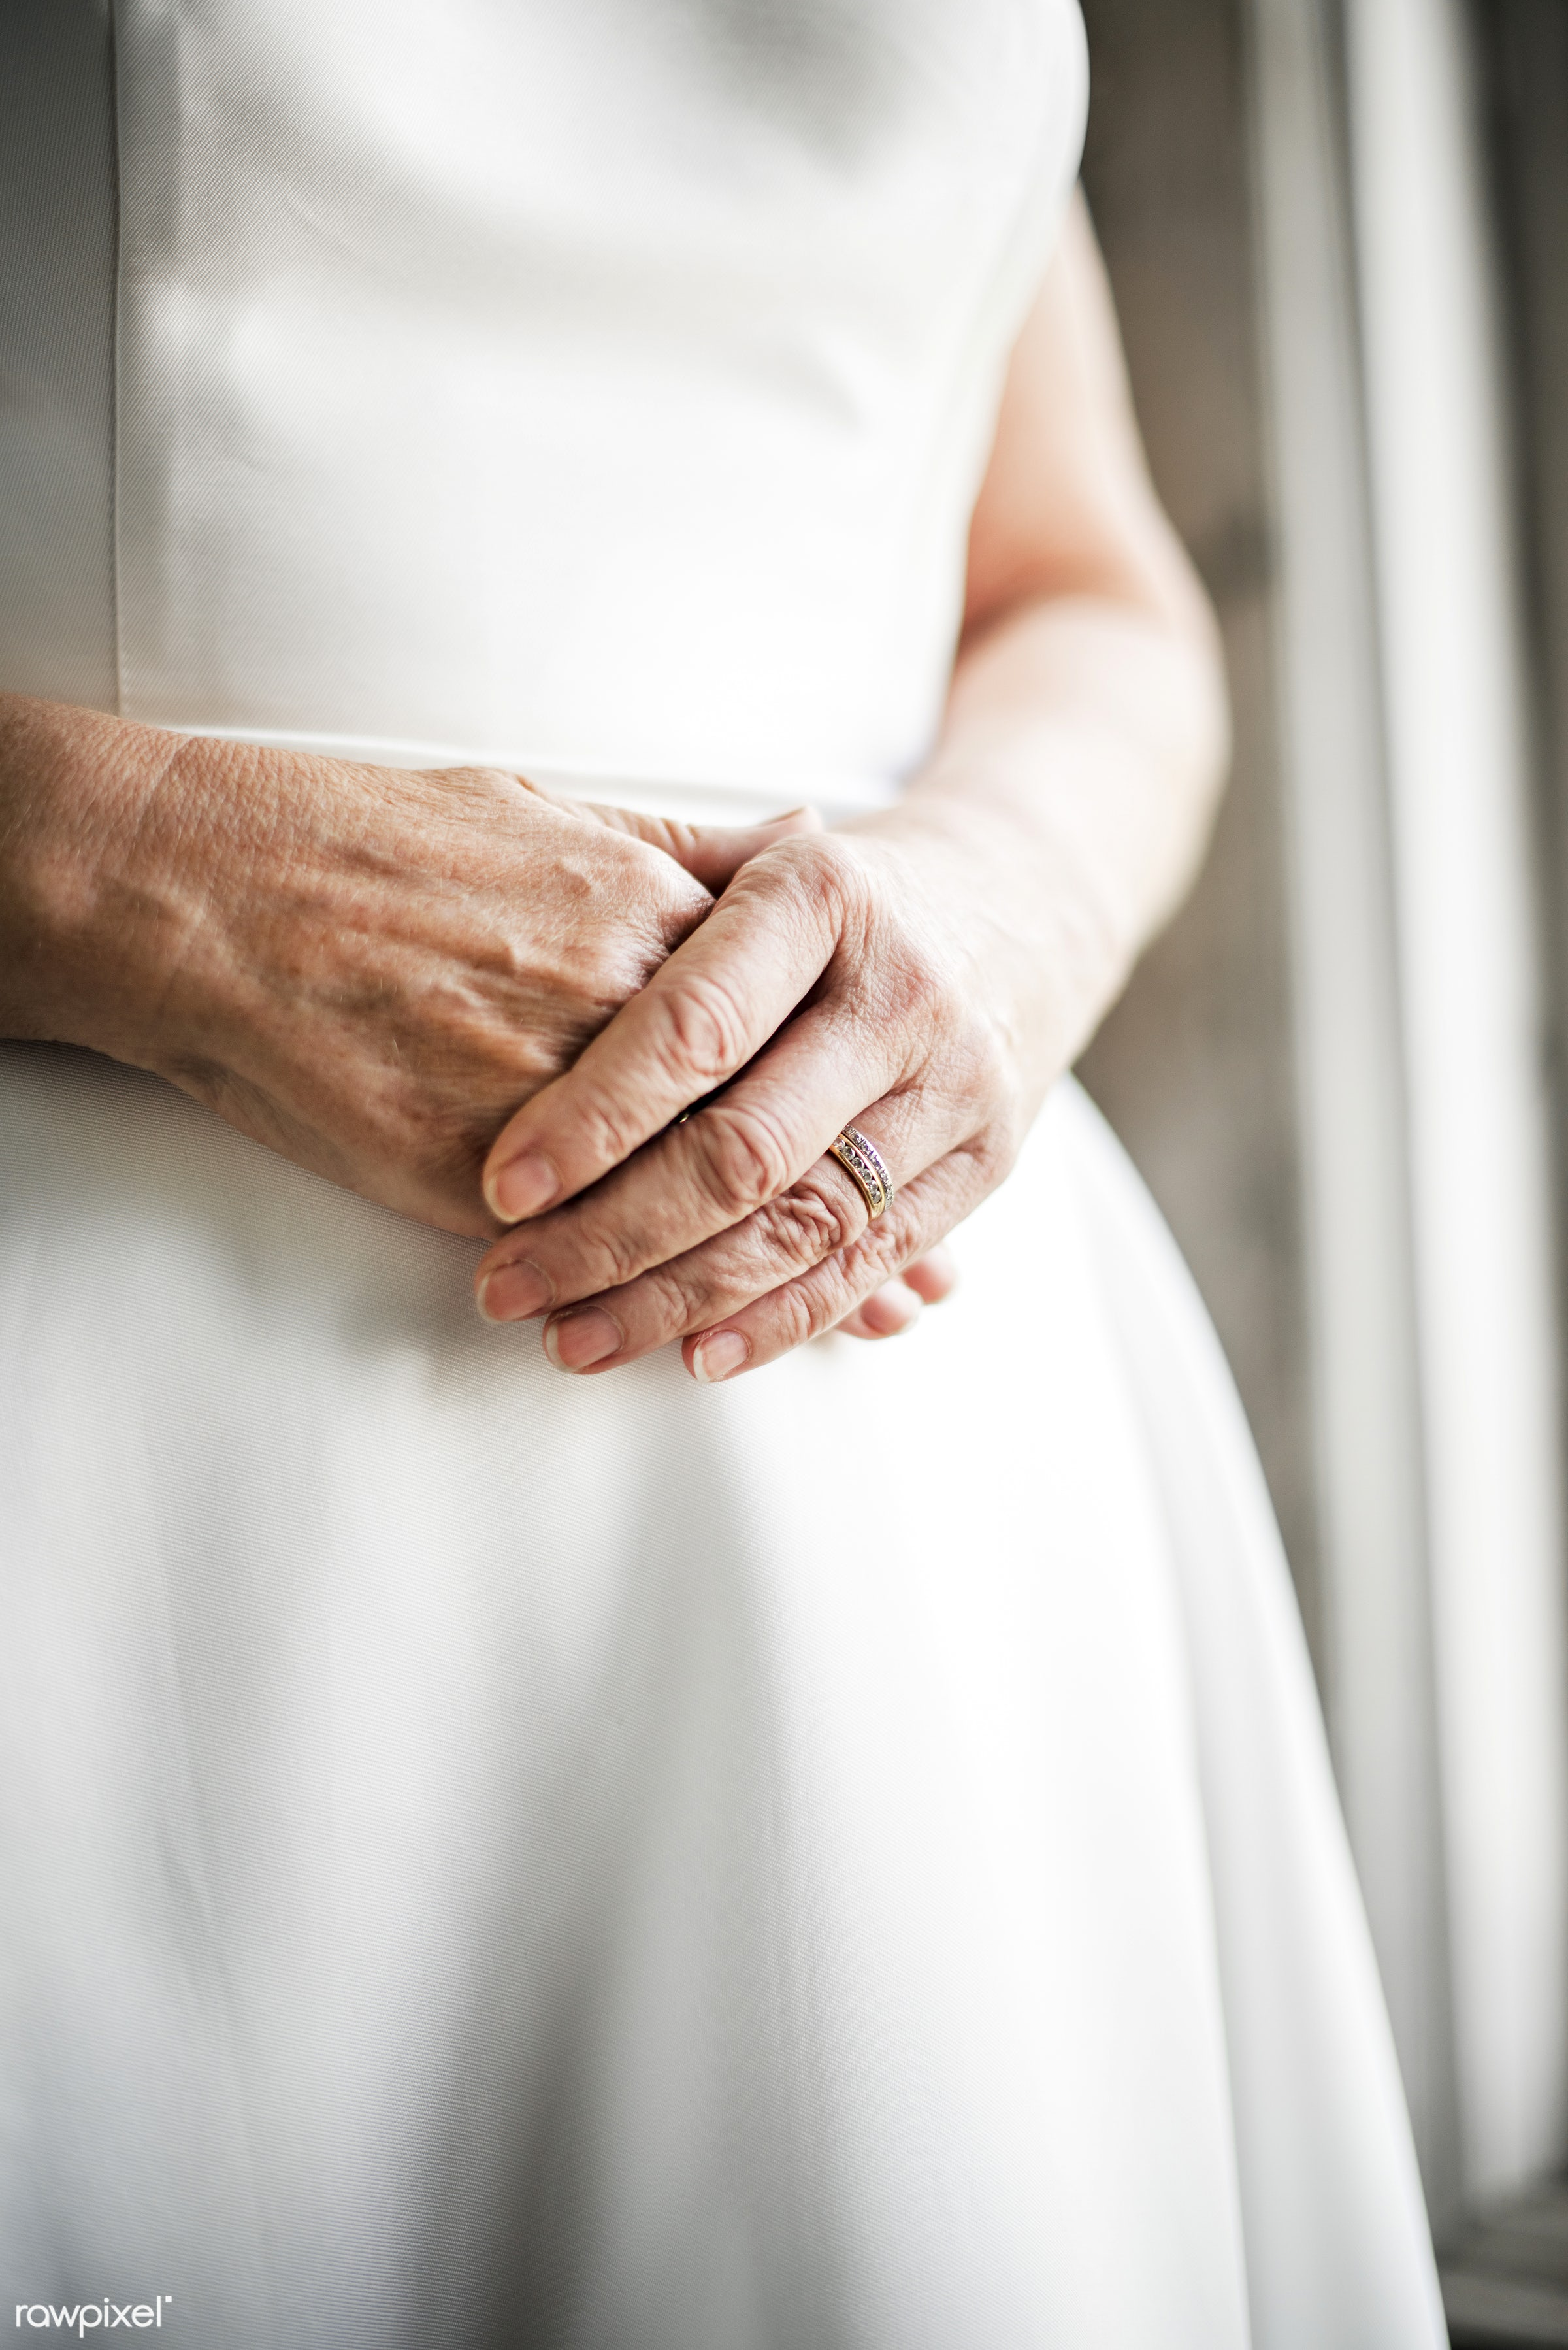 holding, white dress, wedding dress, hands together, people, love, hands, woman, bride, closeup, ring, anniversary, wearing...